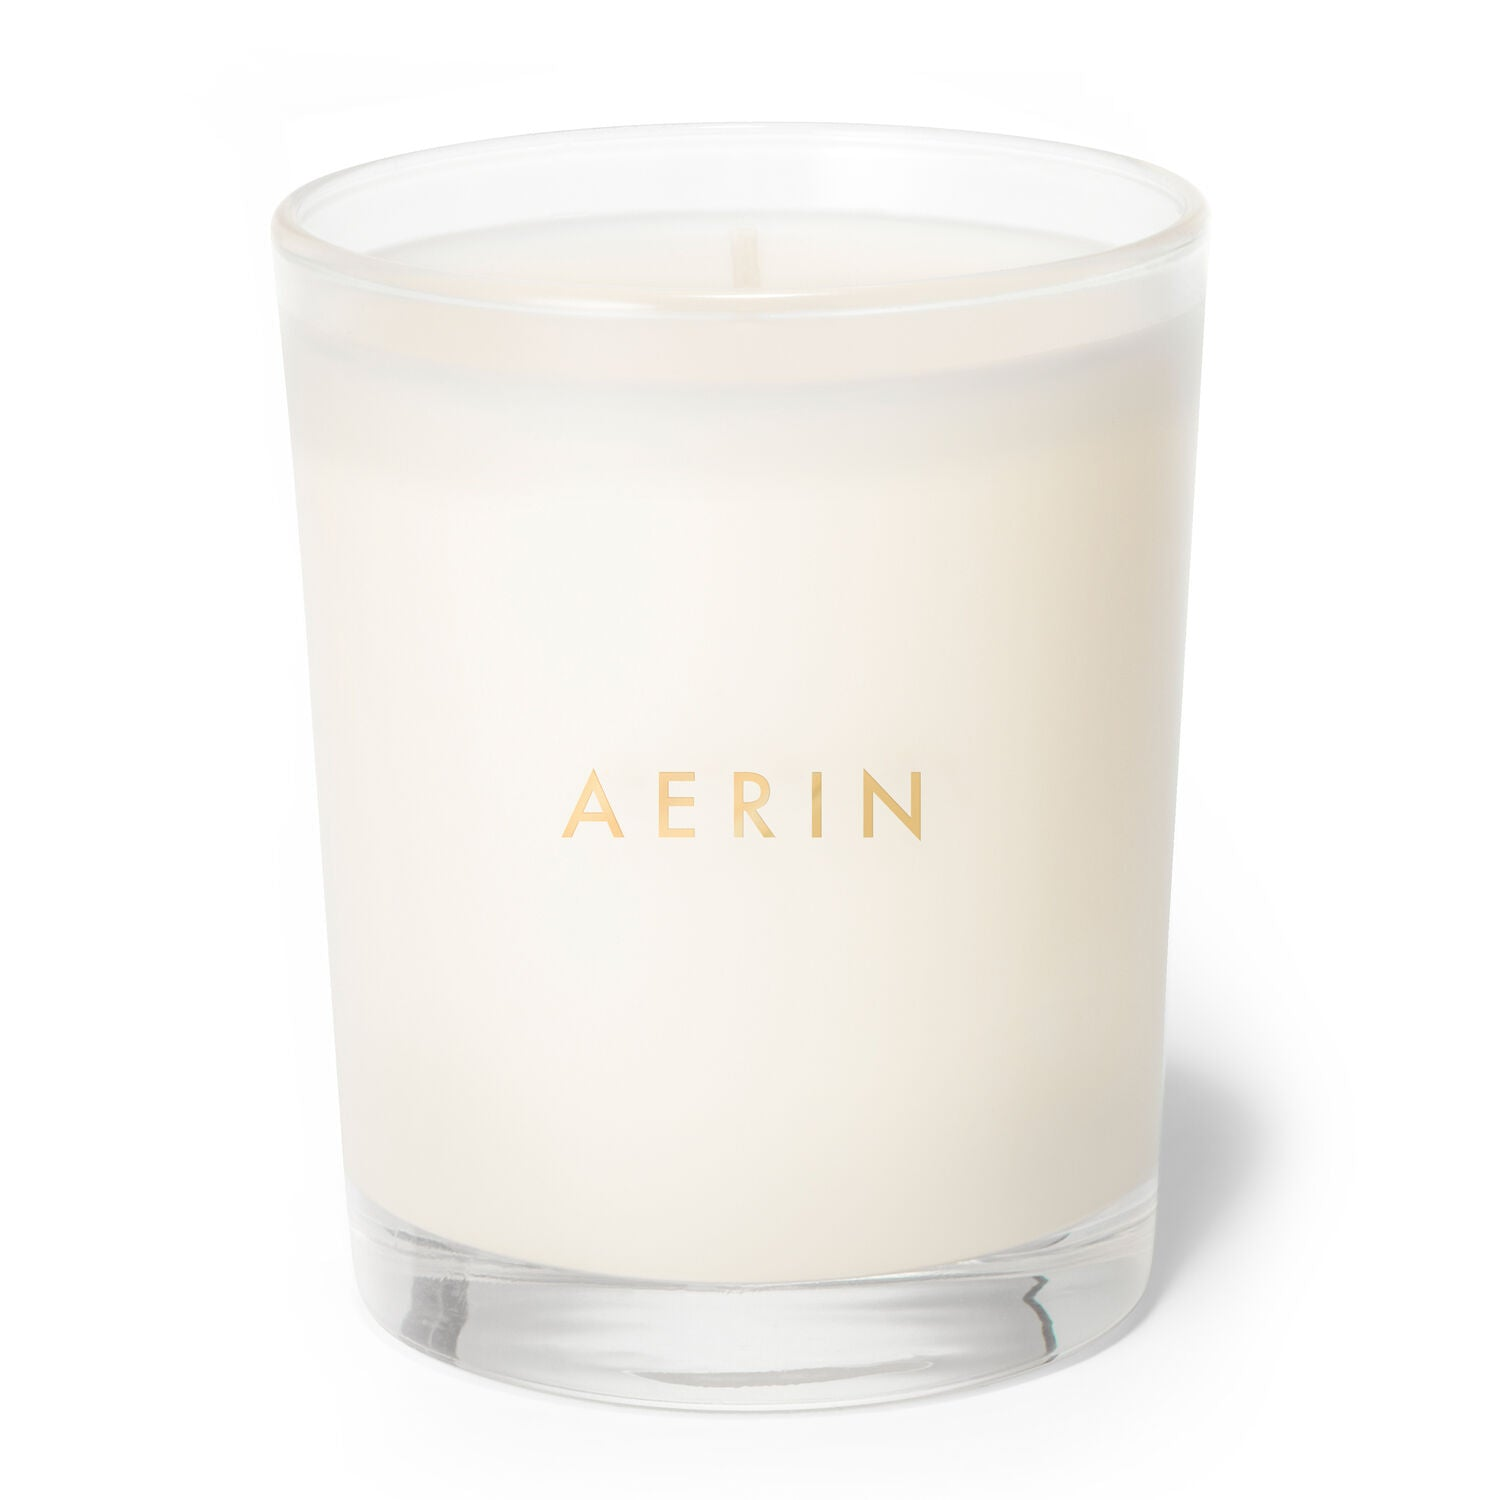 Aerin - Candle - L'ansecoy Orange Blossom 6.7oz